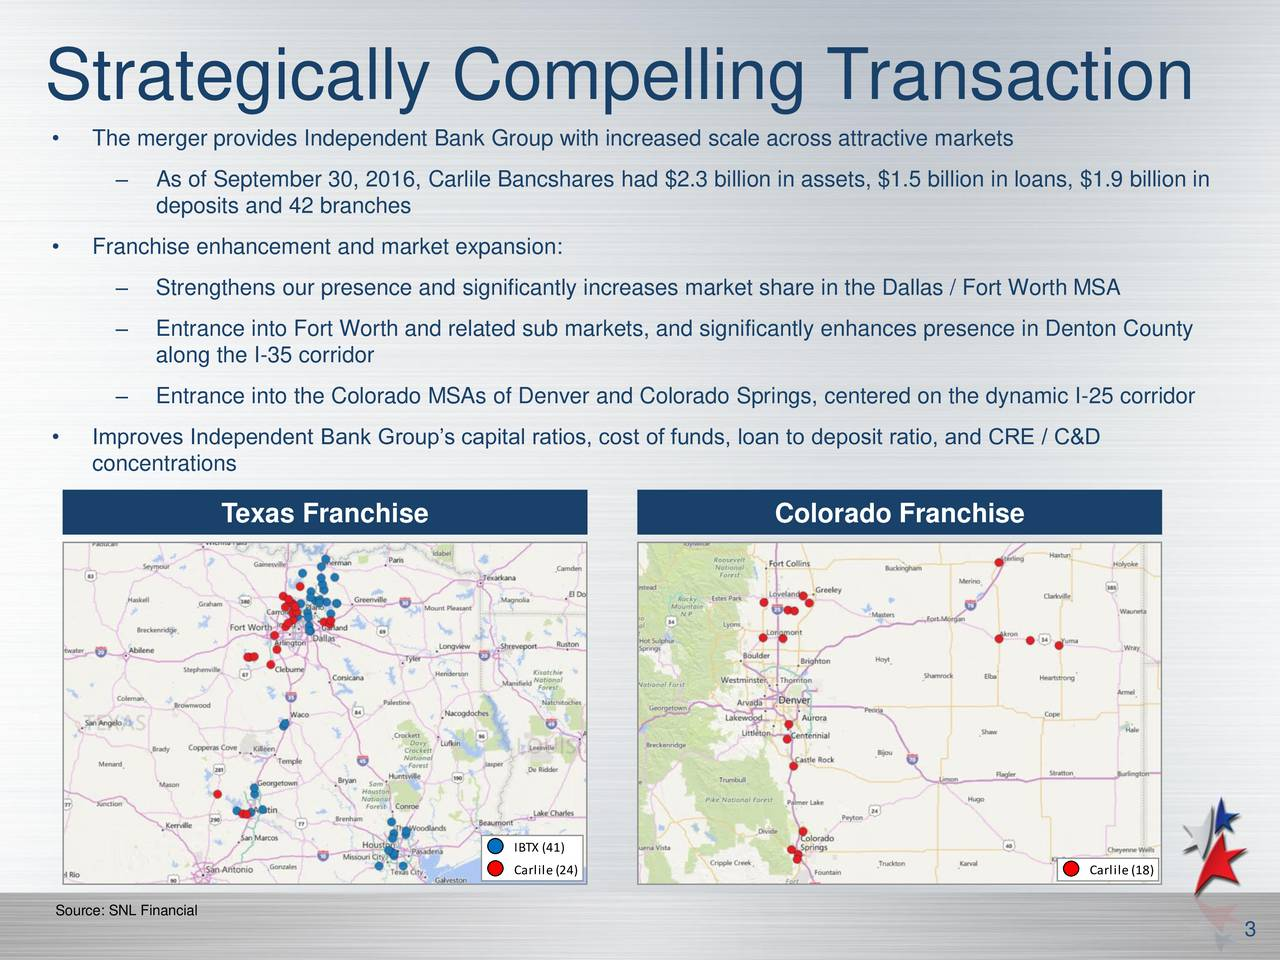 The merger provides Independent Bank Group with increased scale across attractive markets As of September 30, 2016, Carlile Bancshares had $2.3 billion in assets, $1.5 billion in loans, $1.9 billion in deposits and 42 branches Franchise enhancement and market expansion: Strengthens our presence and significantly increases market share in the Dallas / Fort Worth MSA Entrance into Fort Worth and related sub markets, and significantly enhances presence in Denton County along the I-35 corridor Entrance into the Colorado MSAs of Denver and Colorado Springs, centered on the dynamic I-25 corridor Improves Independent Bank Groups capital ratios, cost of funds, loan to deposit ratio, and CRE / C&D concentrations Texas Franchise Colorado Franchise IBTX (41) Carlile(24) Carlile(18) Source: SNL Financial 3